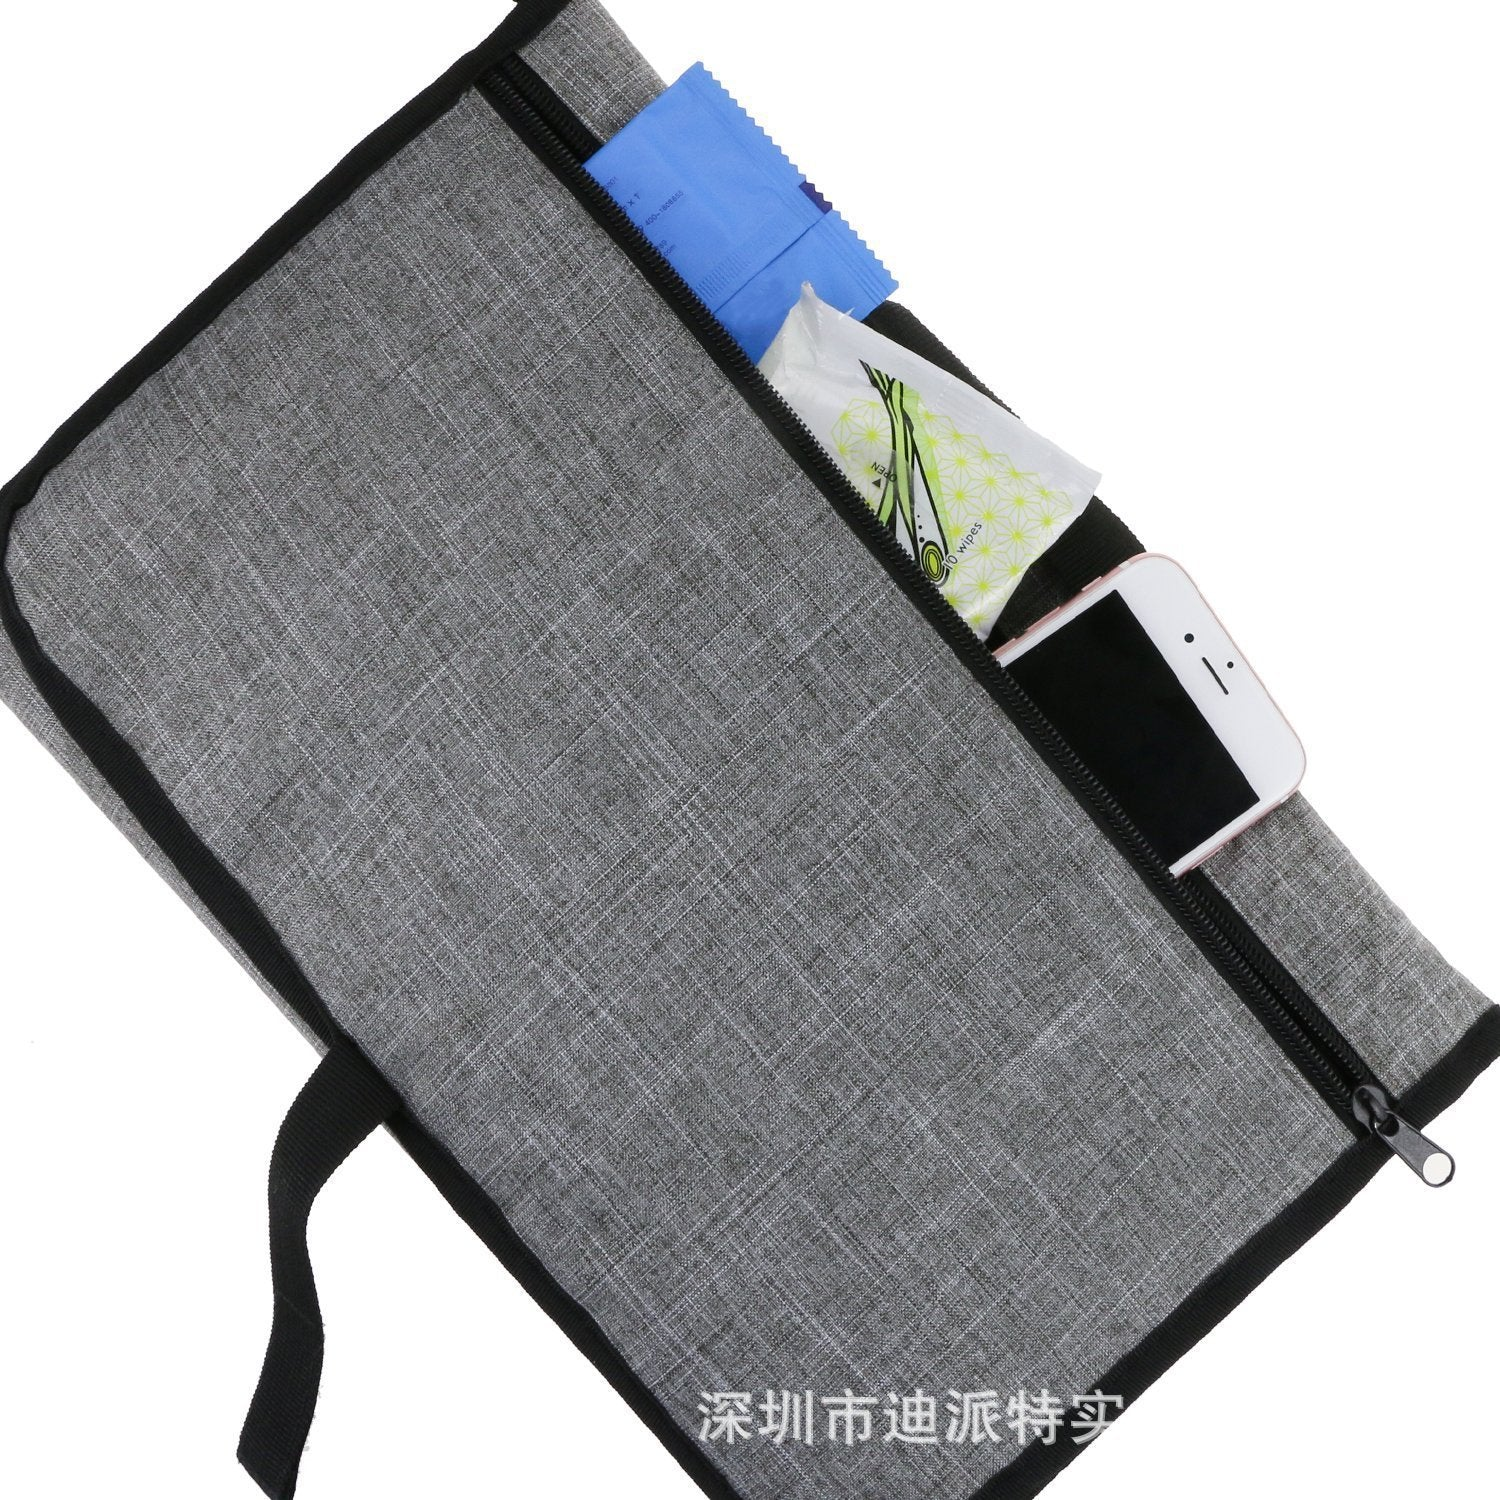 ALL-IN-ONE PORTABLE DIAPER BAG CLUTCH CHANGING STATION